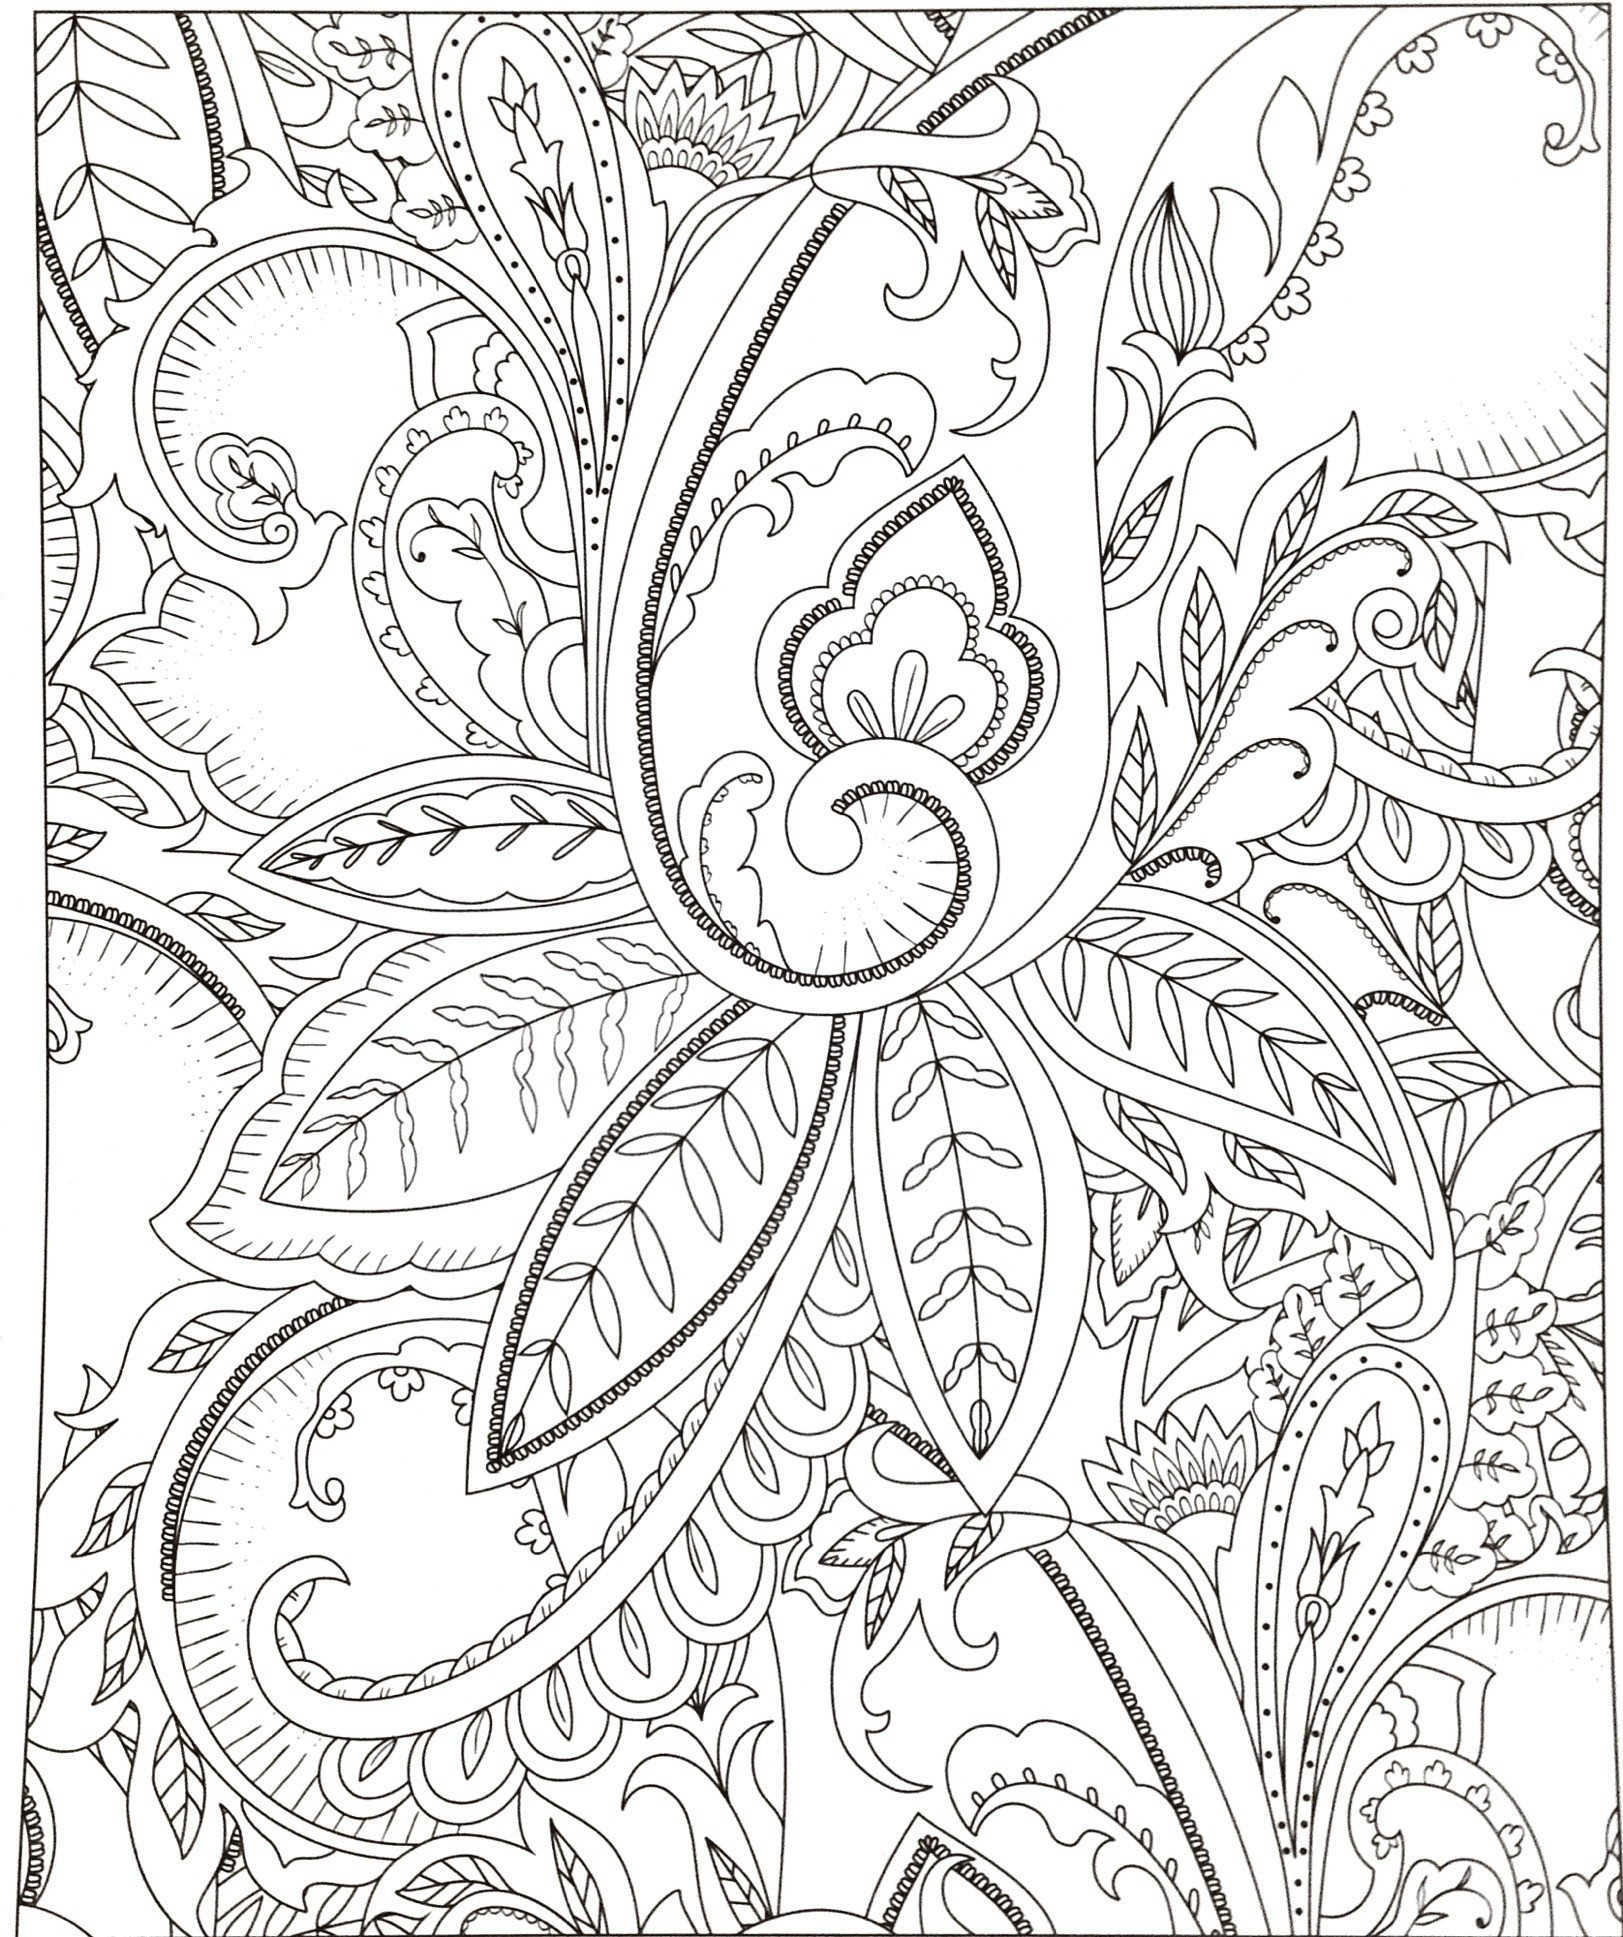 Elegant 2Nd Grade Math Coloring Pages – Howtobeaweso throughout Math Coloring Worksheets For 2Nd Graders